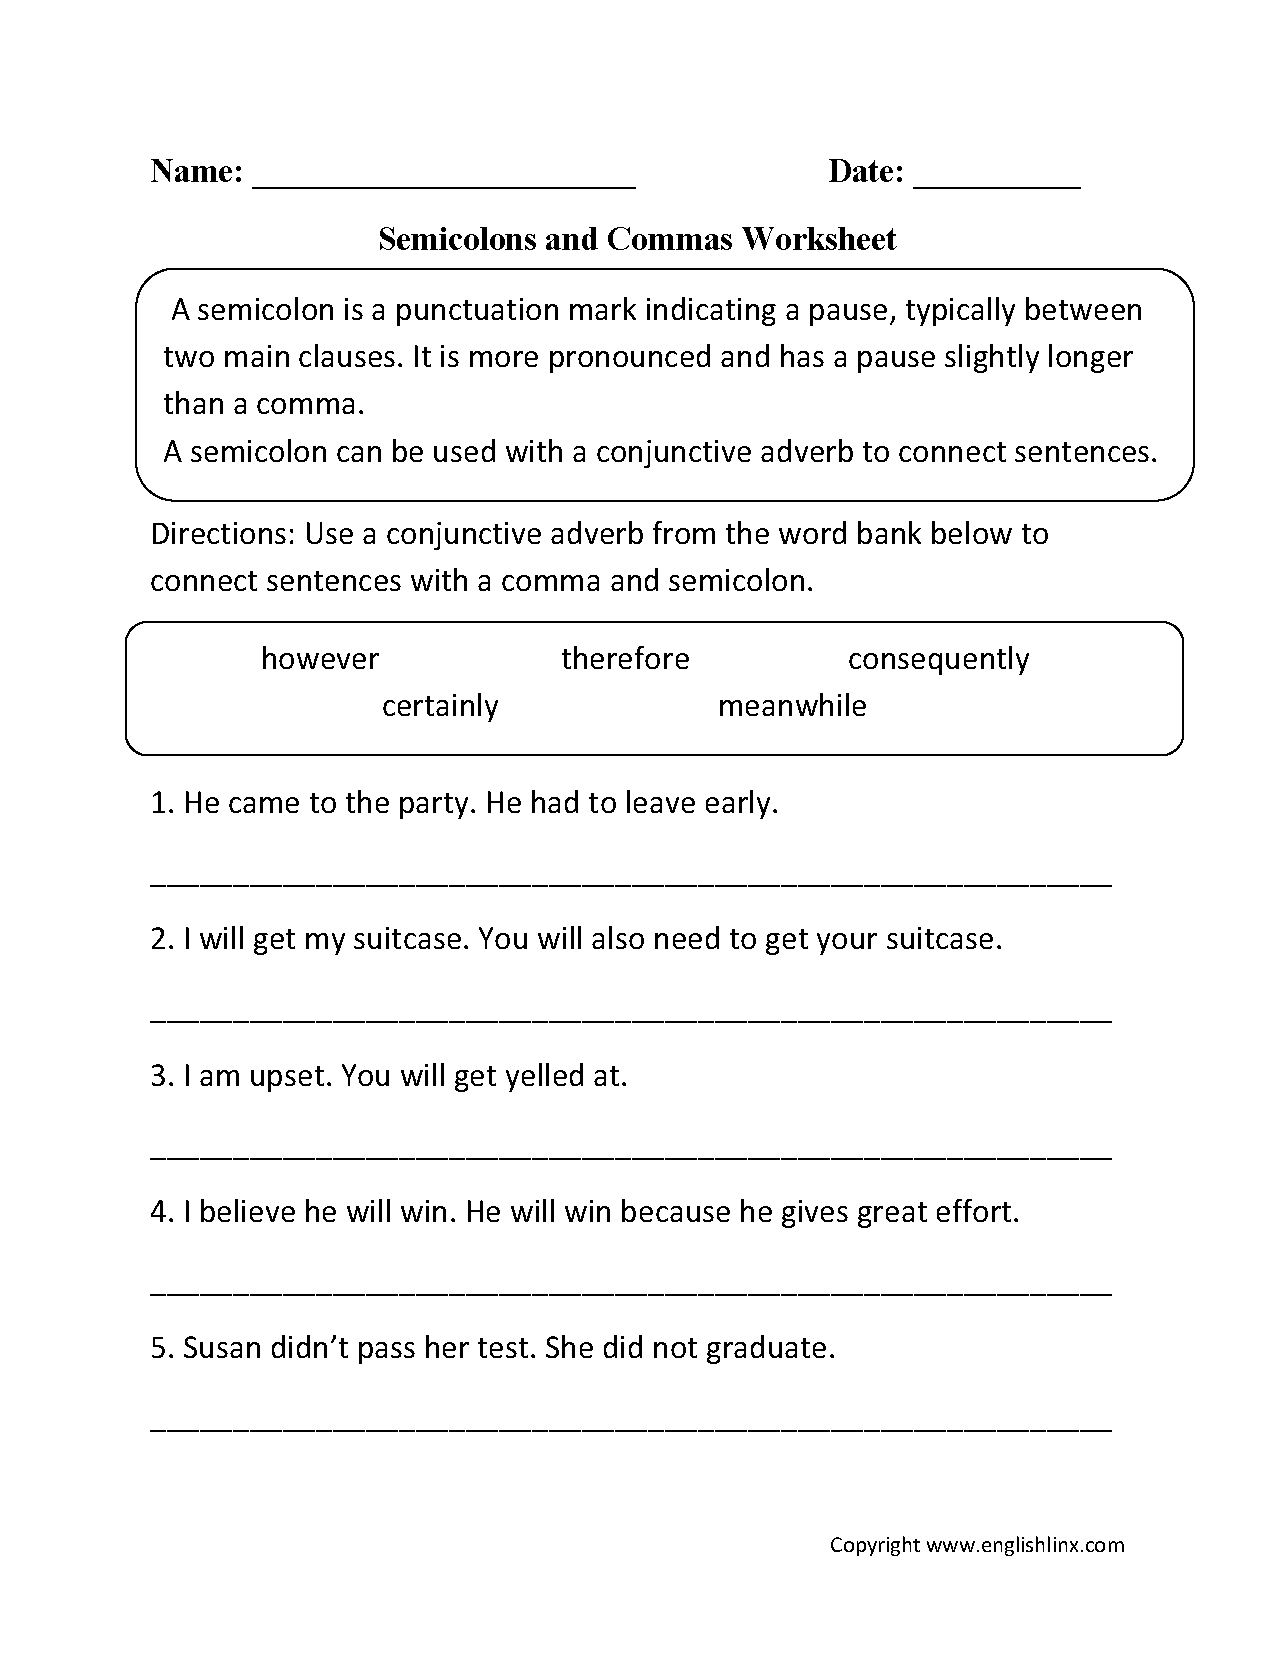 Semicolon And Commas Worksheet